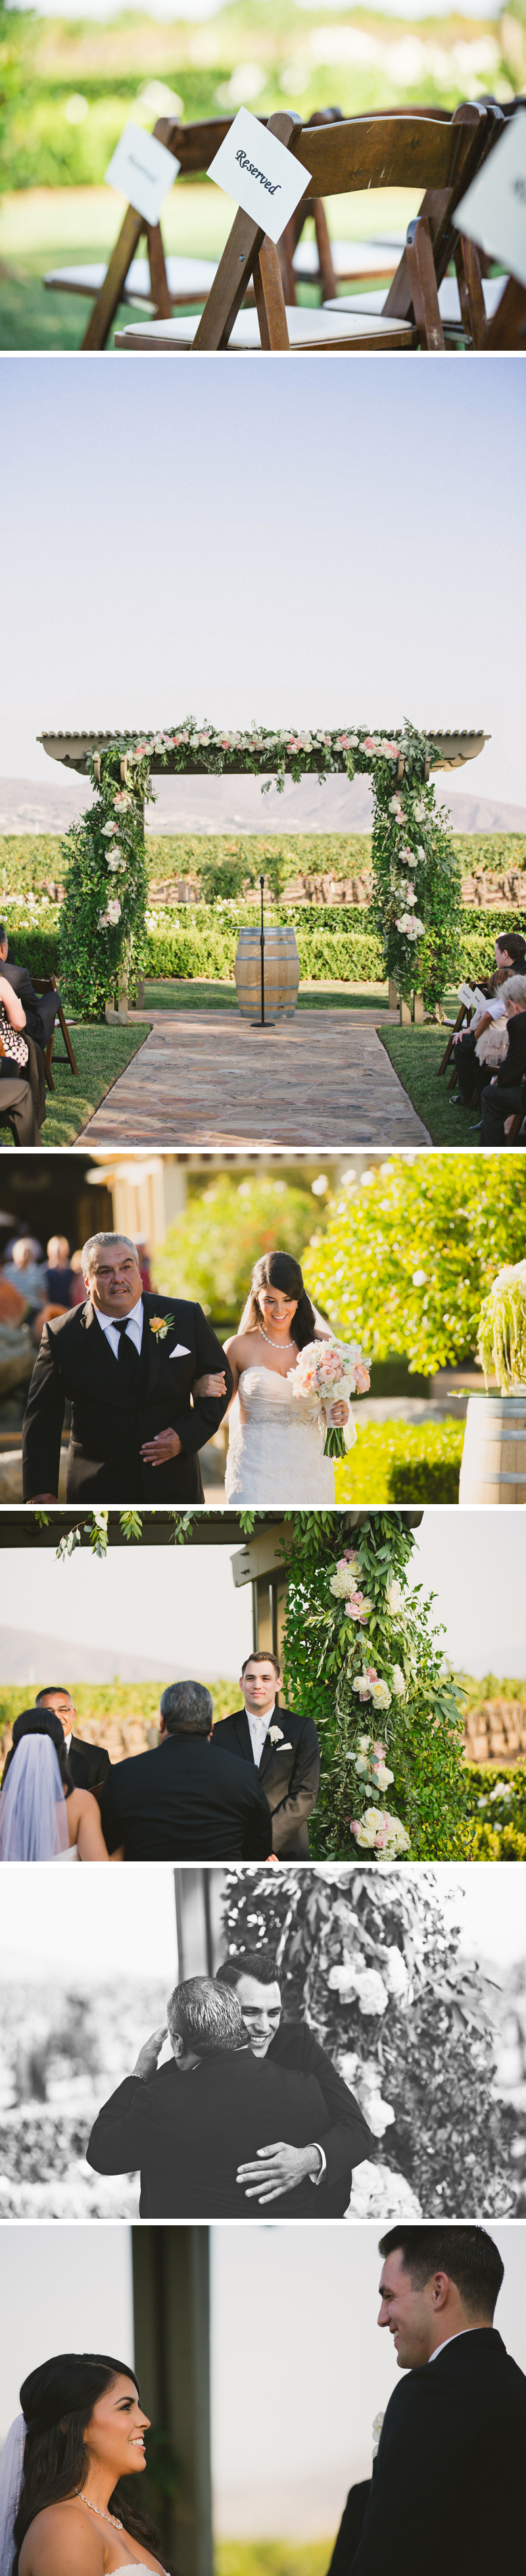 ponte-wedding-photos8